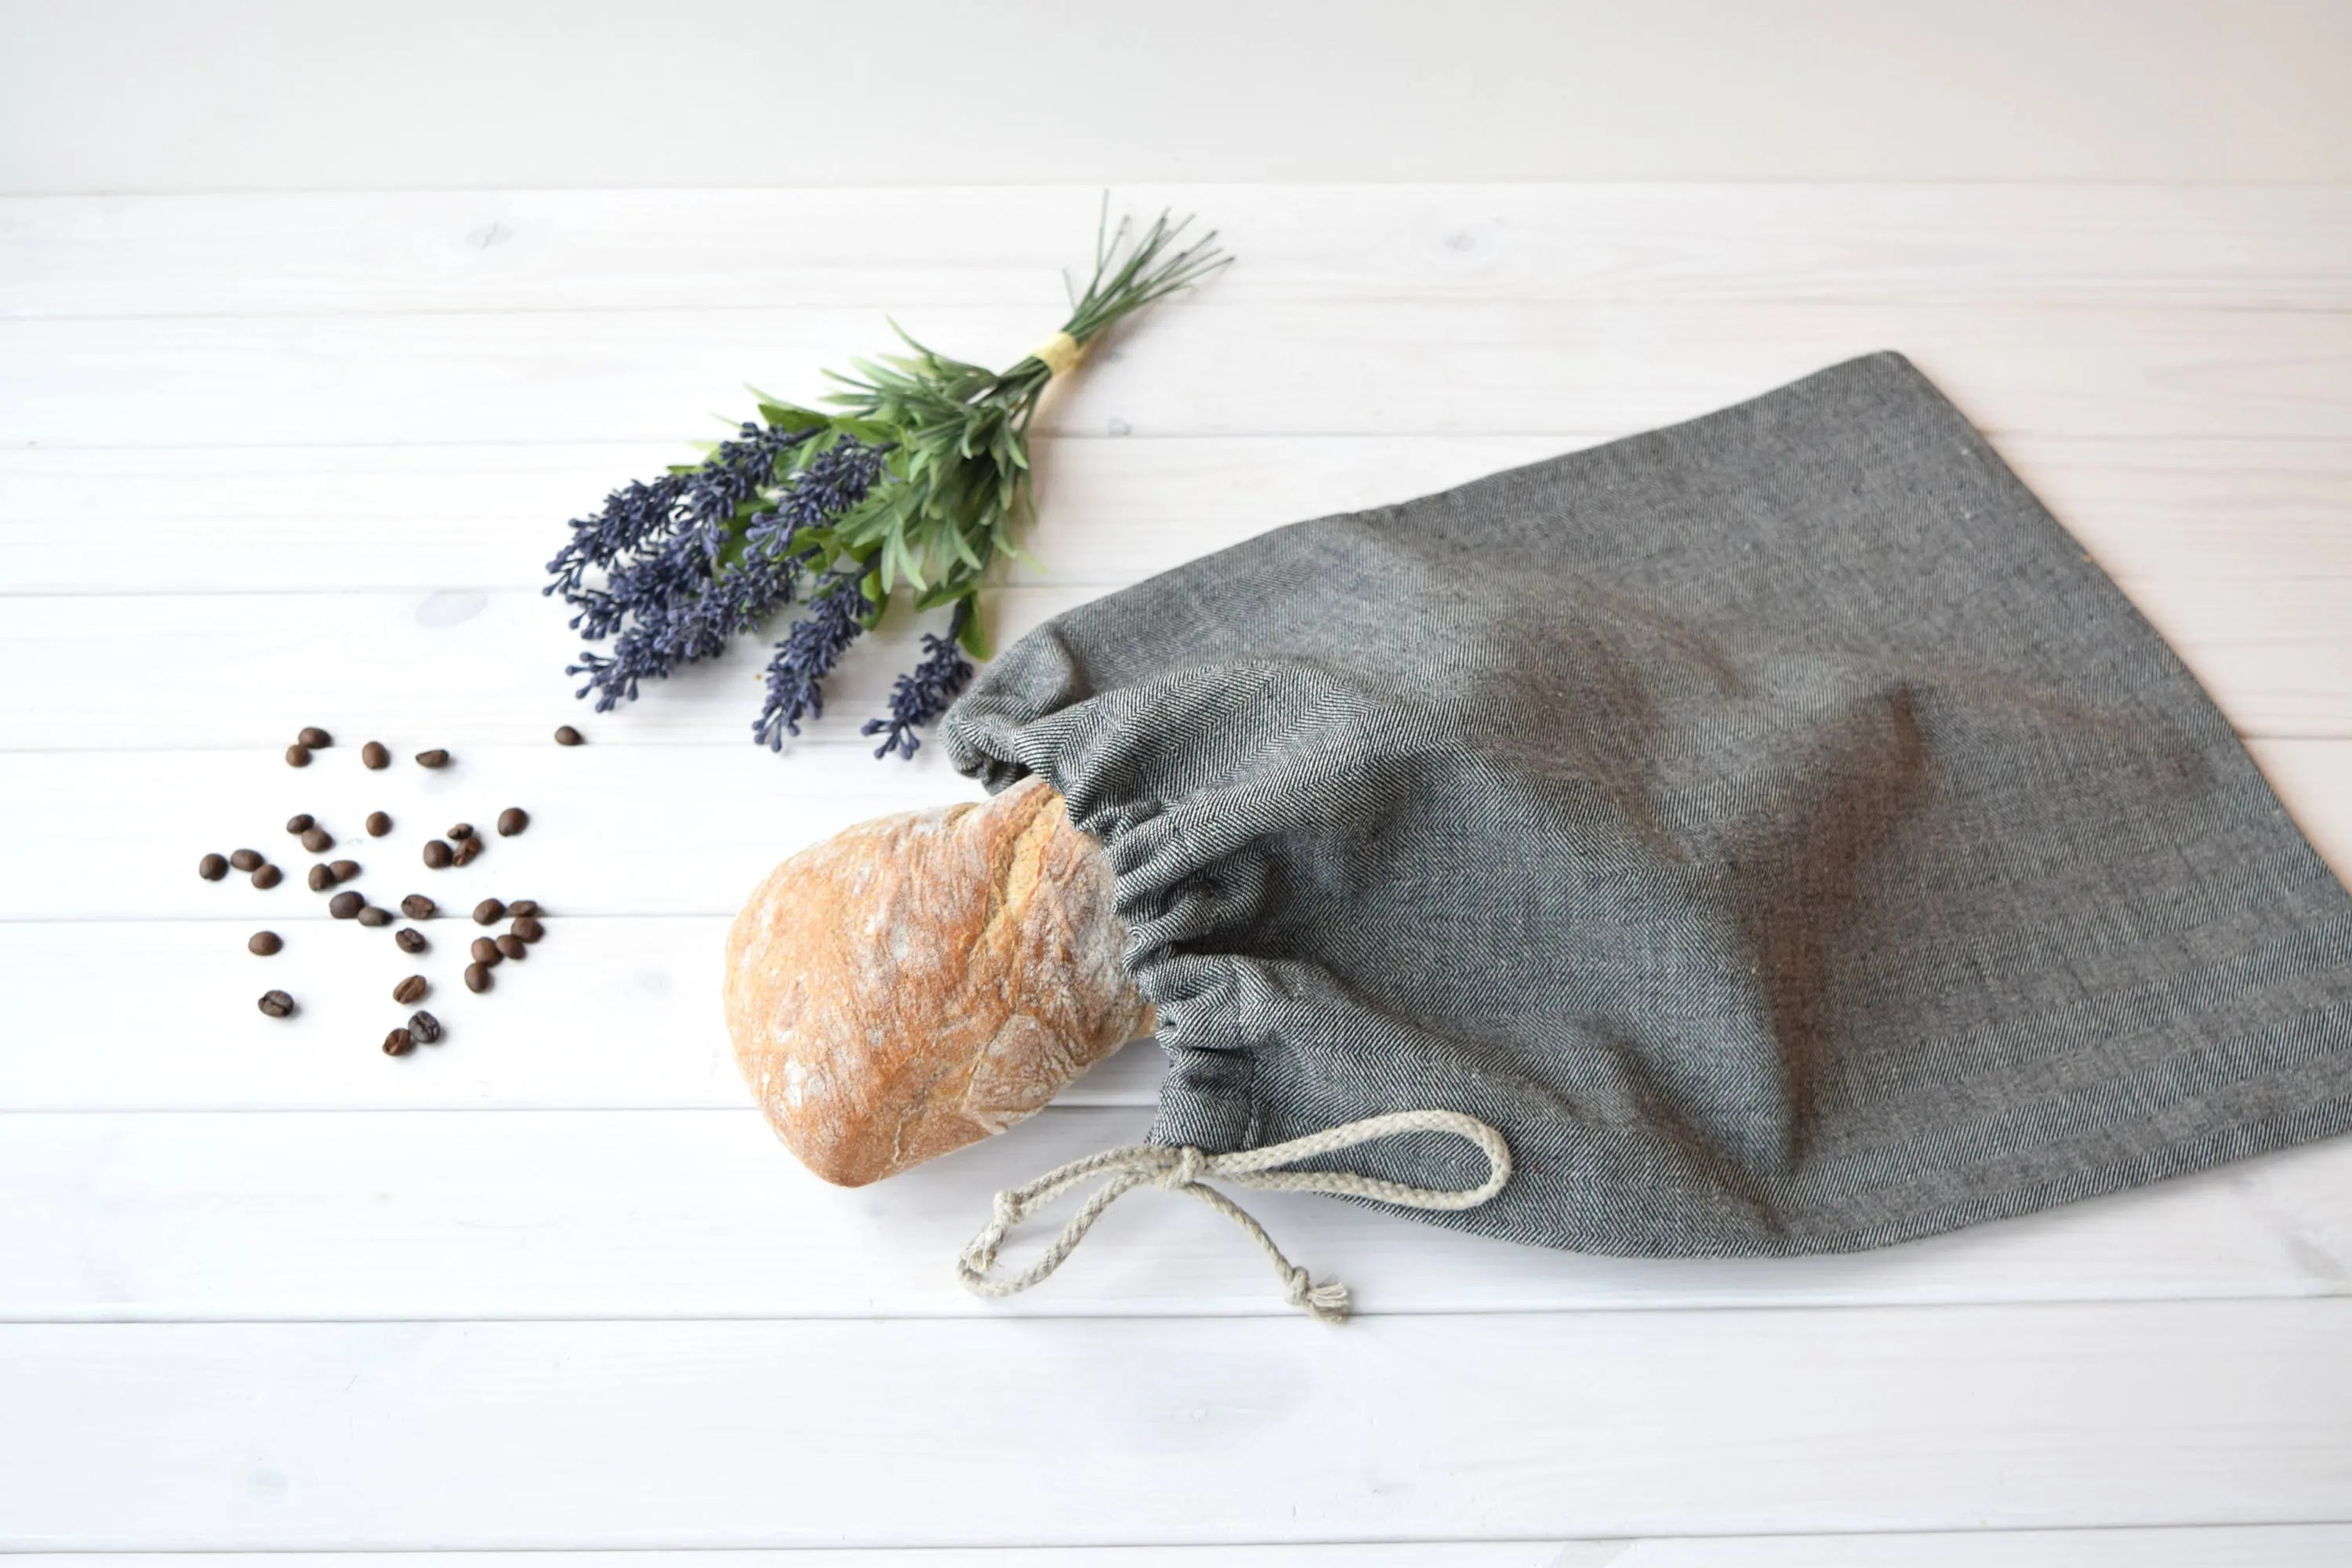 Storage Sac Bread Keeper Bread Bag Linen Cloth Bag Bread Storage Sac Pain Food Gift Basket Baguette Pain Flax Bread Bag Bread Bag Korbtasche